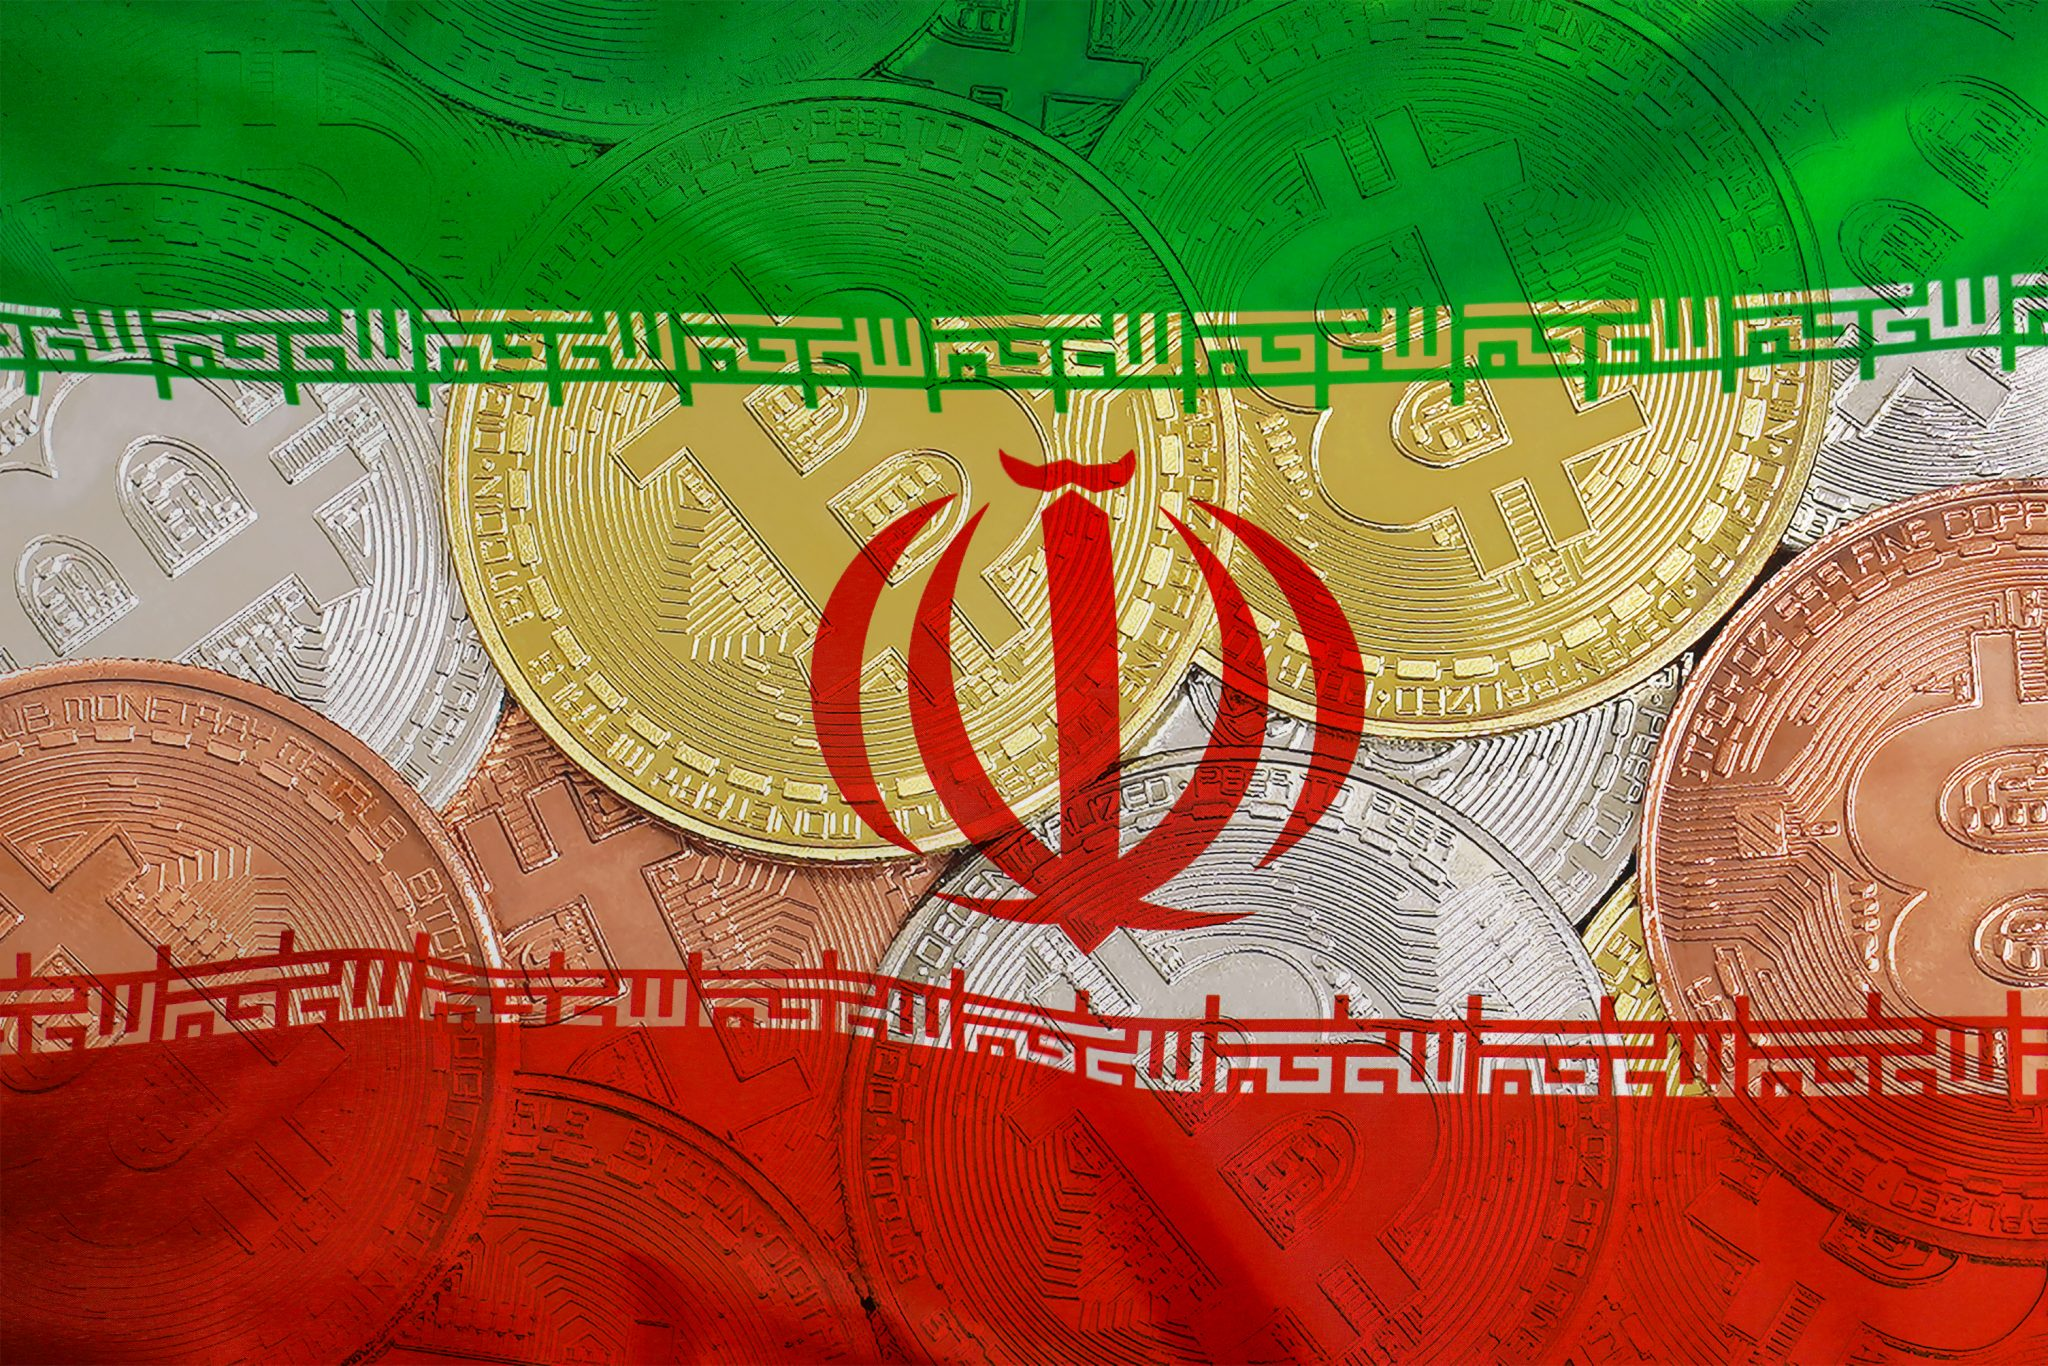 Mining in Iran. Bitcoins on the background of the Iran flag. Concept for investors in cryptocurrency and Blockchain technology in Iran